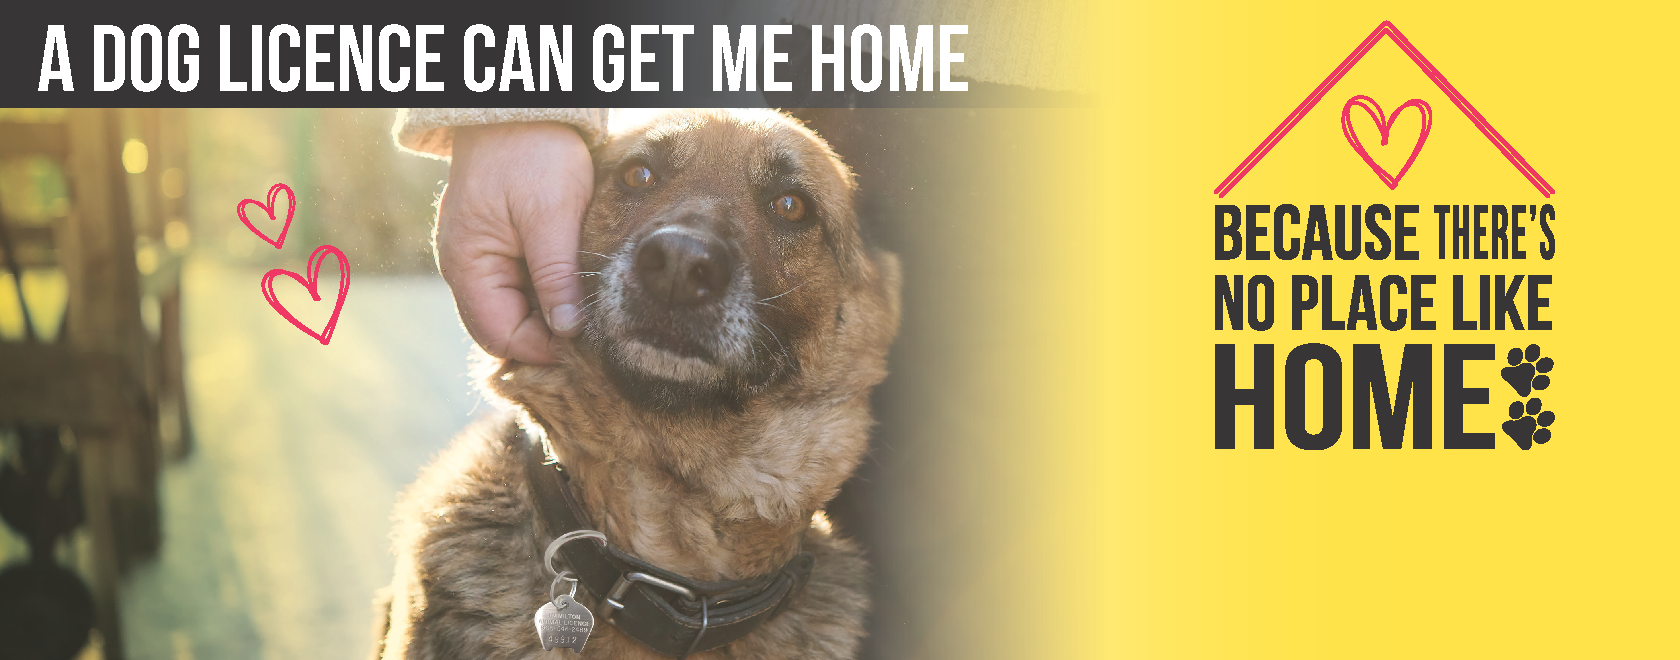 "Image of dog with it's owner with the text ""A dog Licence can get me home"""